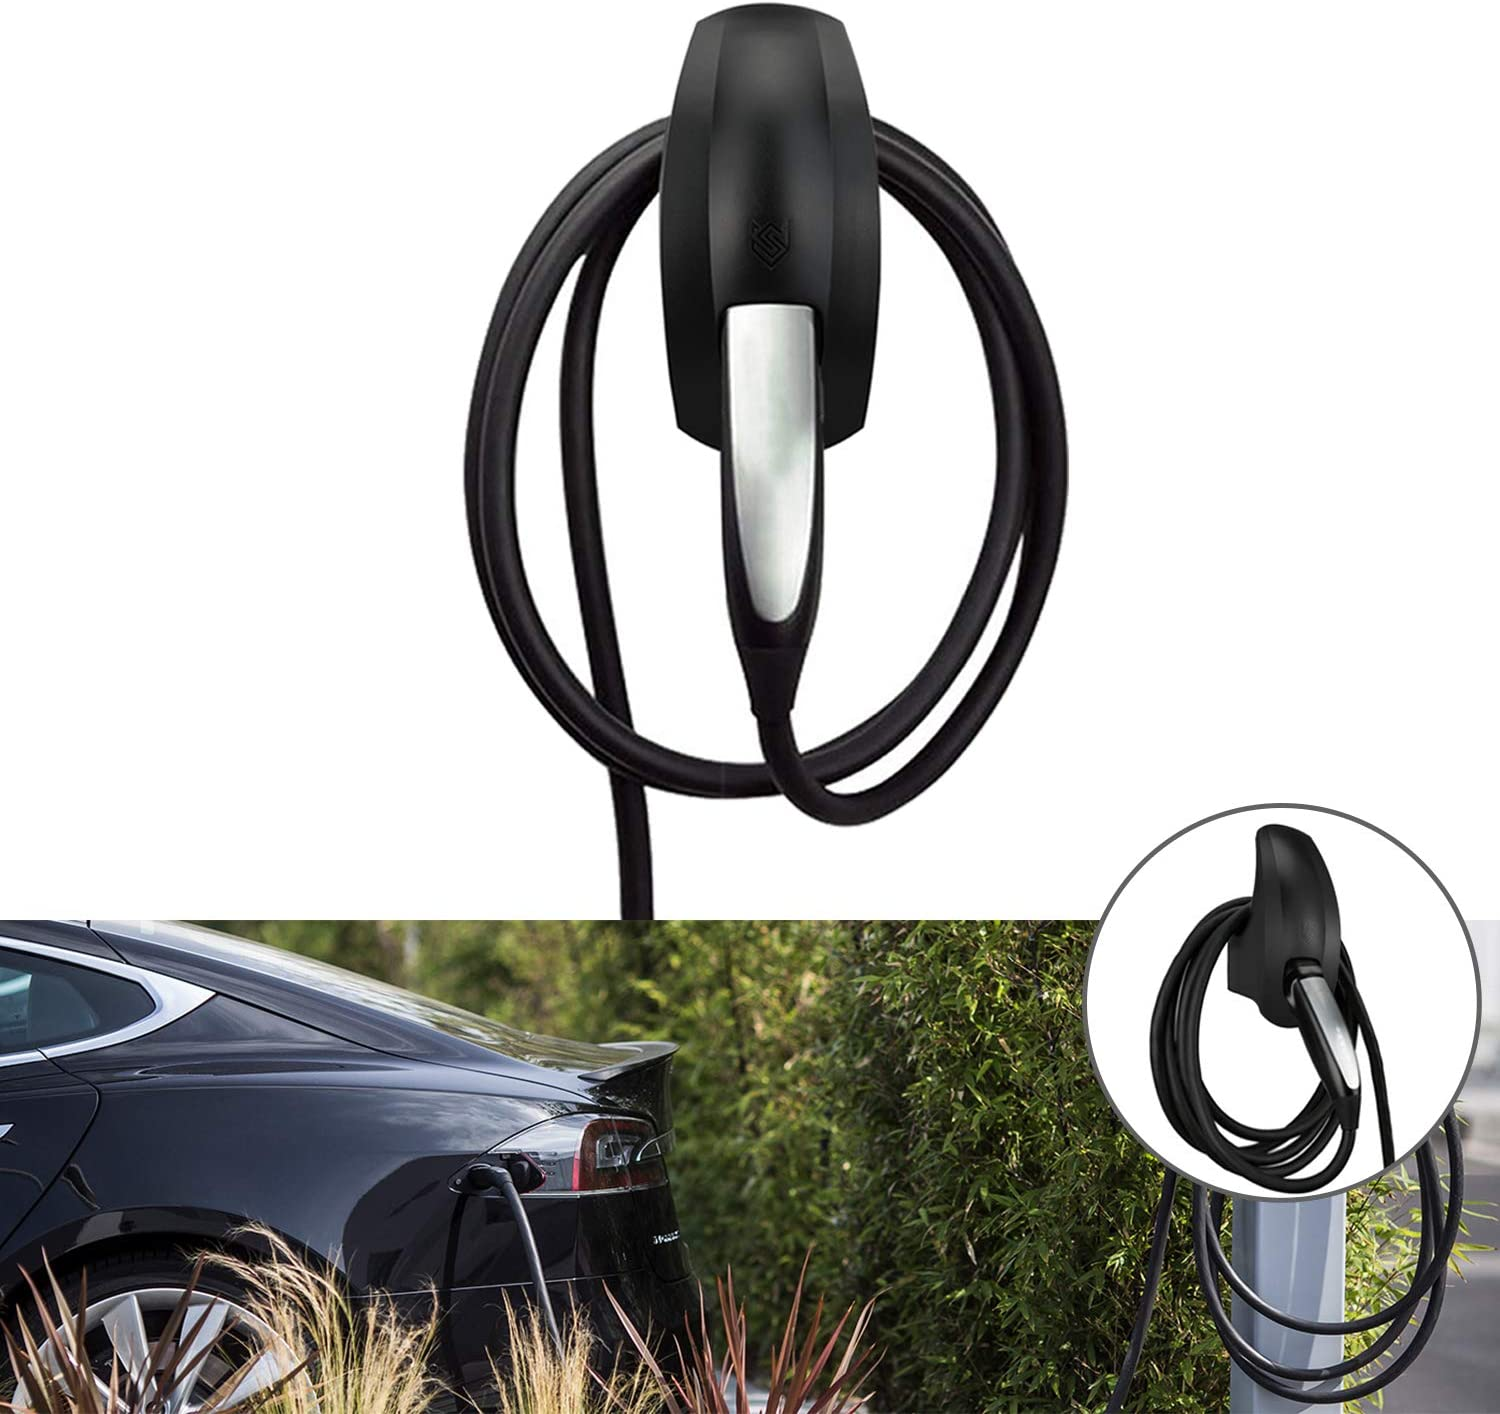 Seven Sparta Charging Cable Holder Organizer for Model Popular brand in the world 3 Tesla M Popular overseas